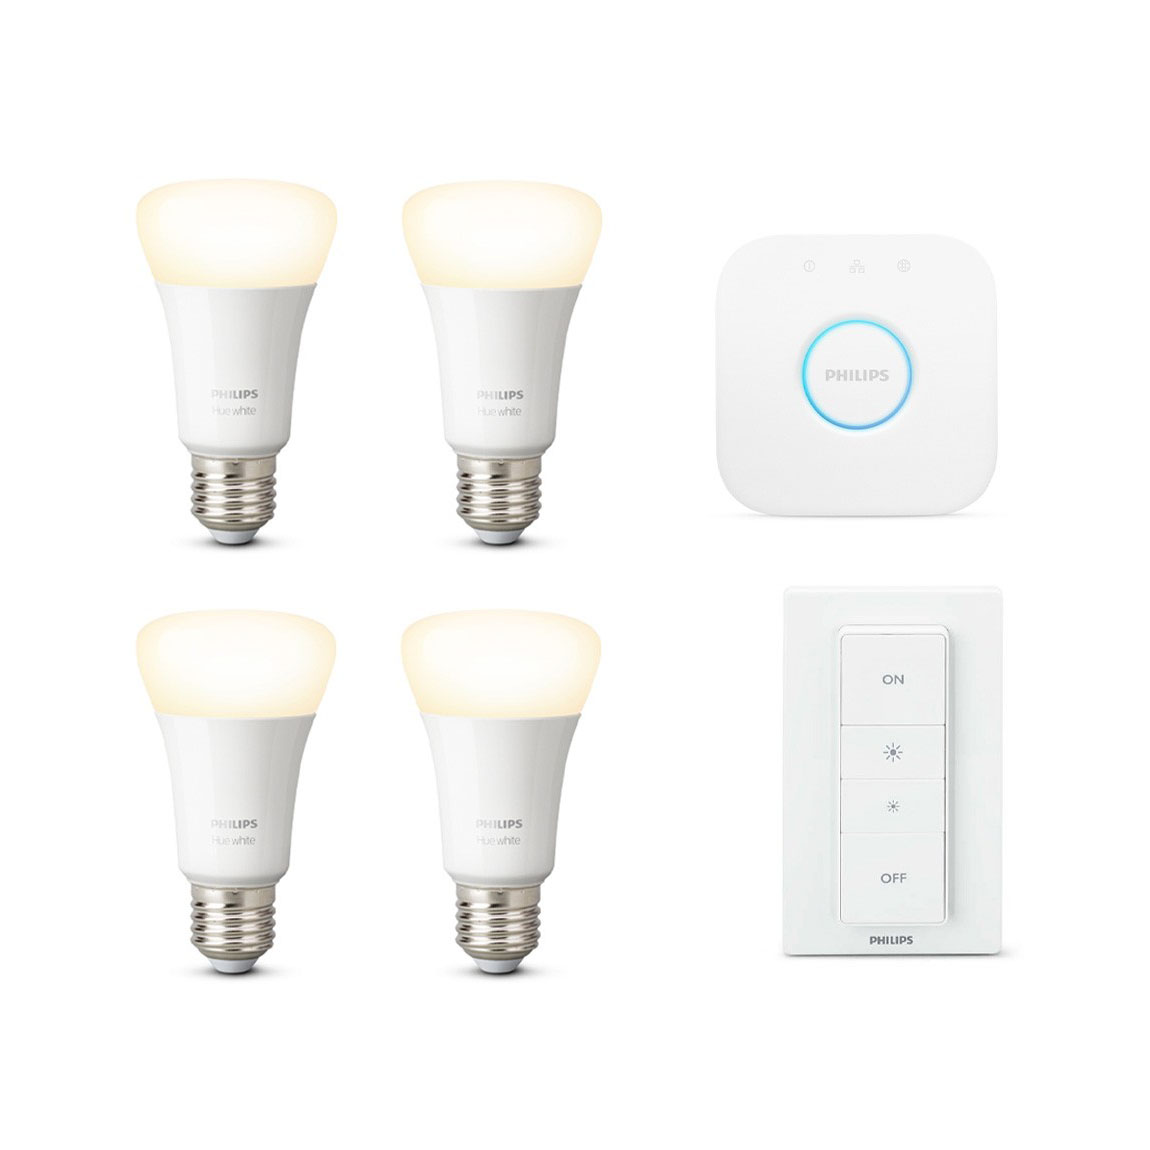 Philips Hue White E27 Bluetooth Starter Kit + gratis Lampe